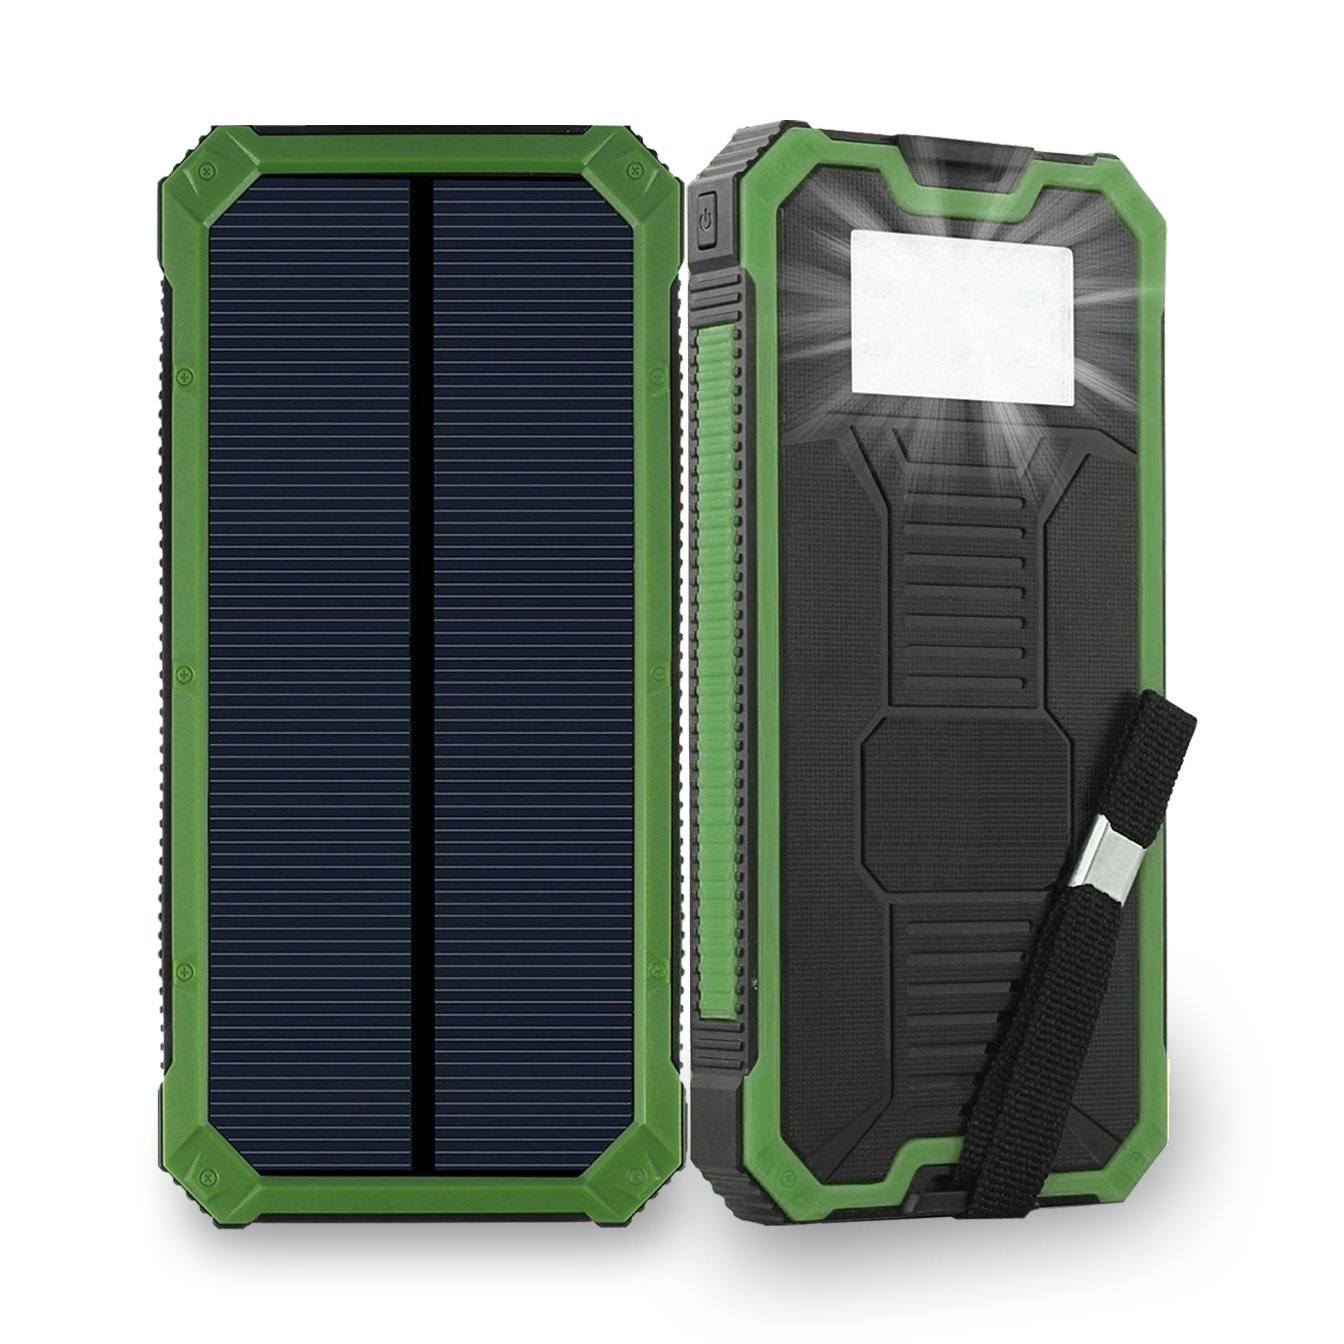 Solar Phone Charger Friengood 15000mAh Portable Solar Power Bank with Dual USB Ports, Waterproof Solar Battery Charger with 6 LED Flashlight Light for iPhone, iPad, Cellphone and More (Green)